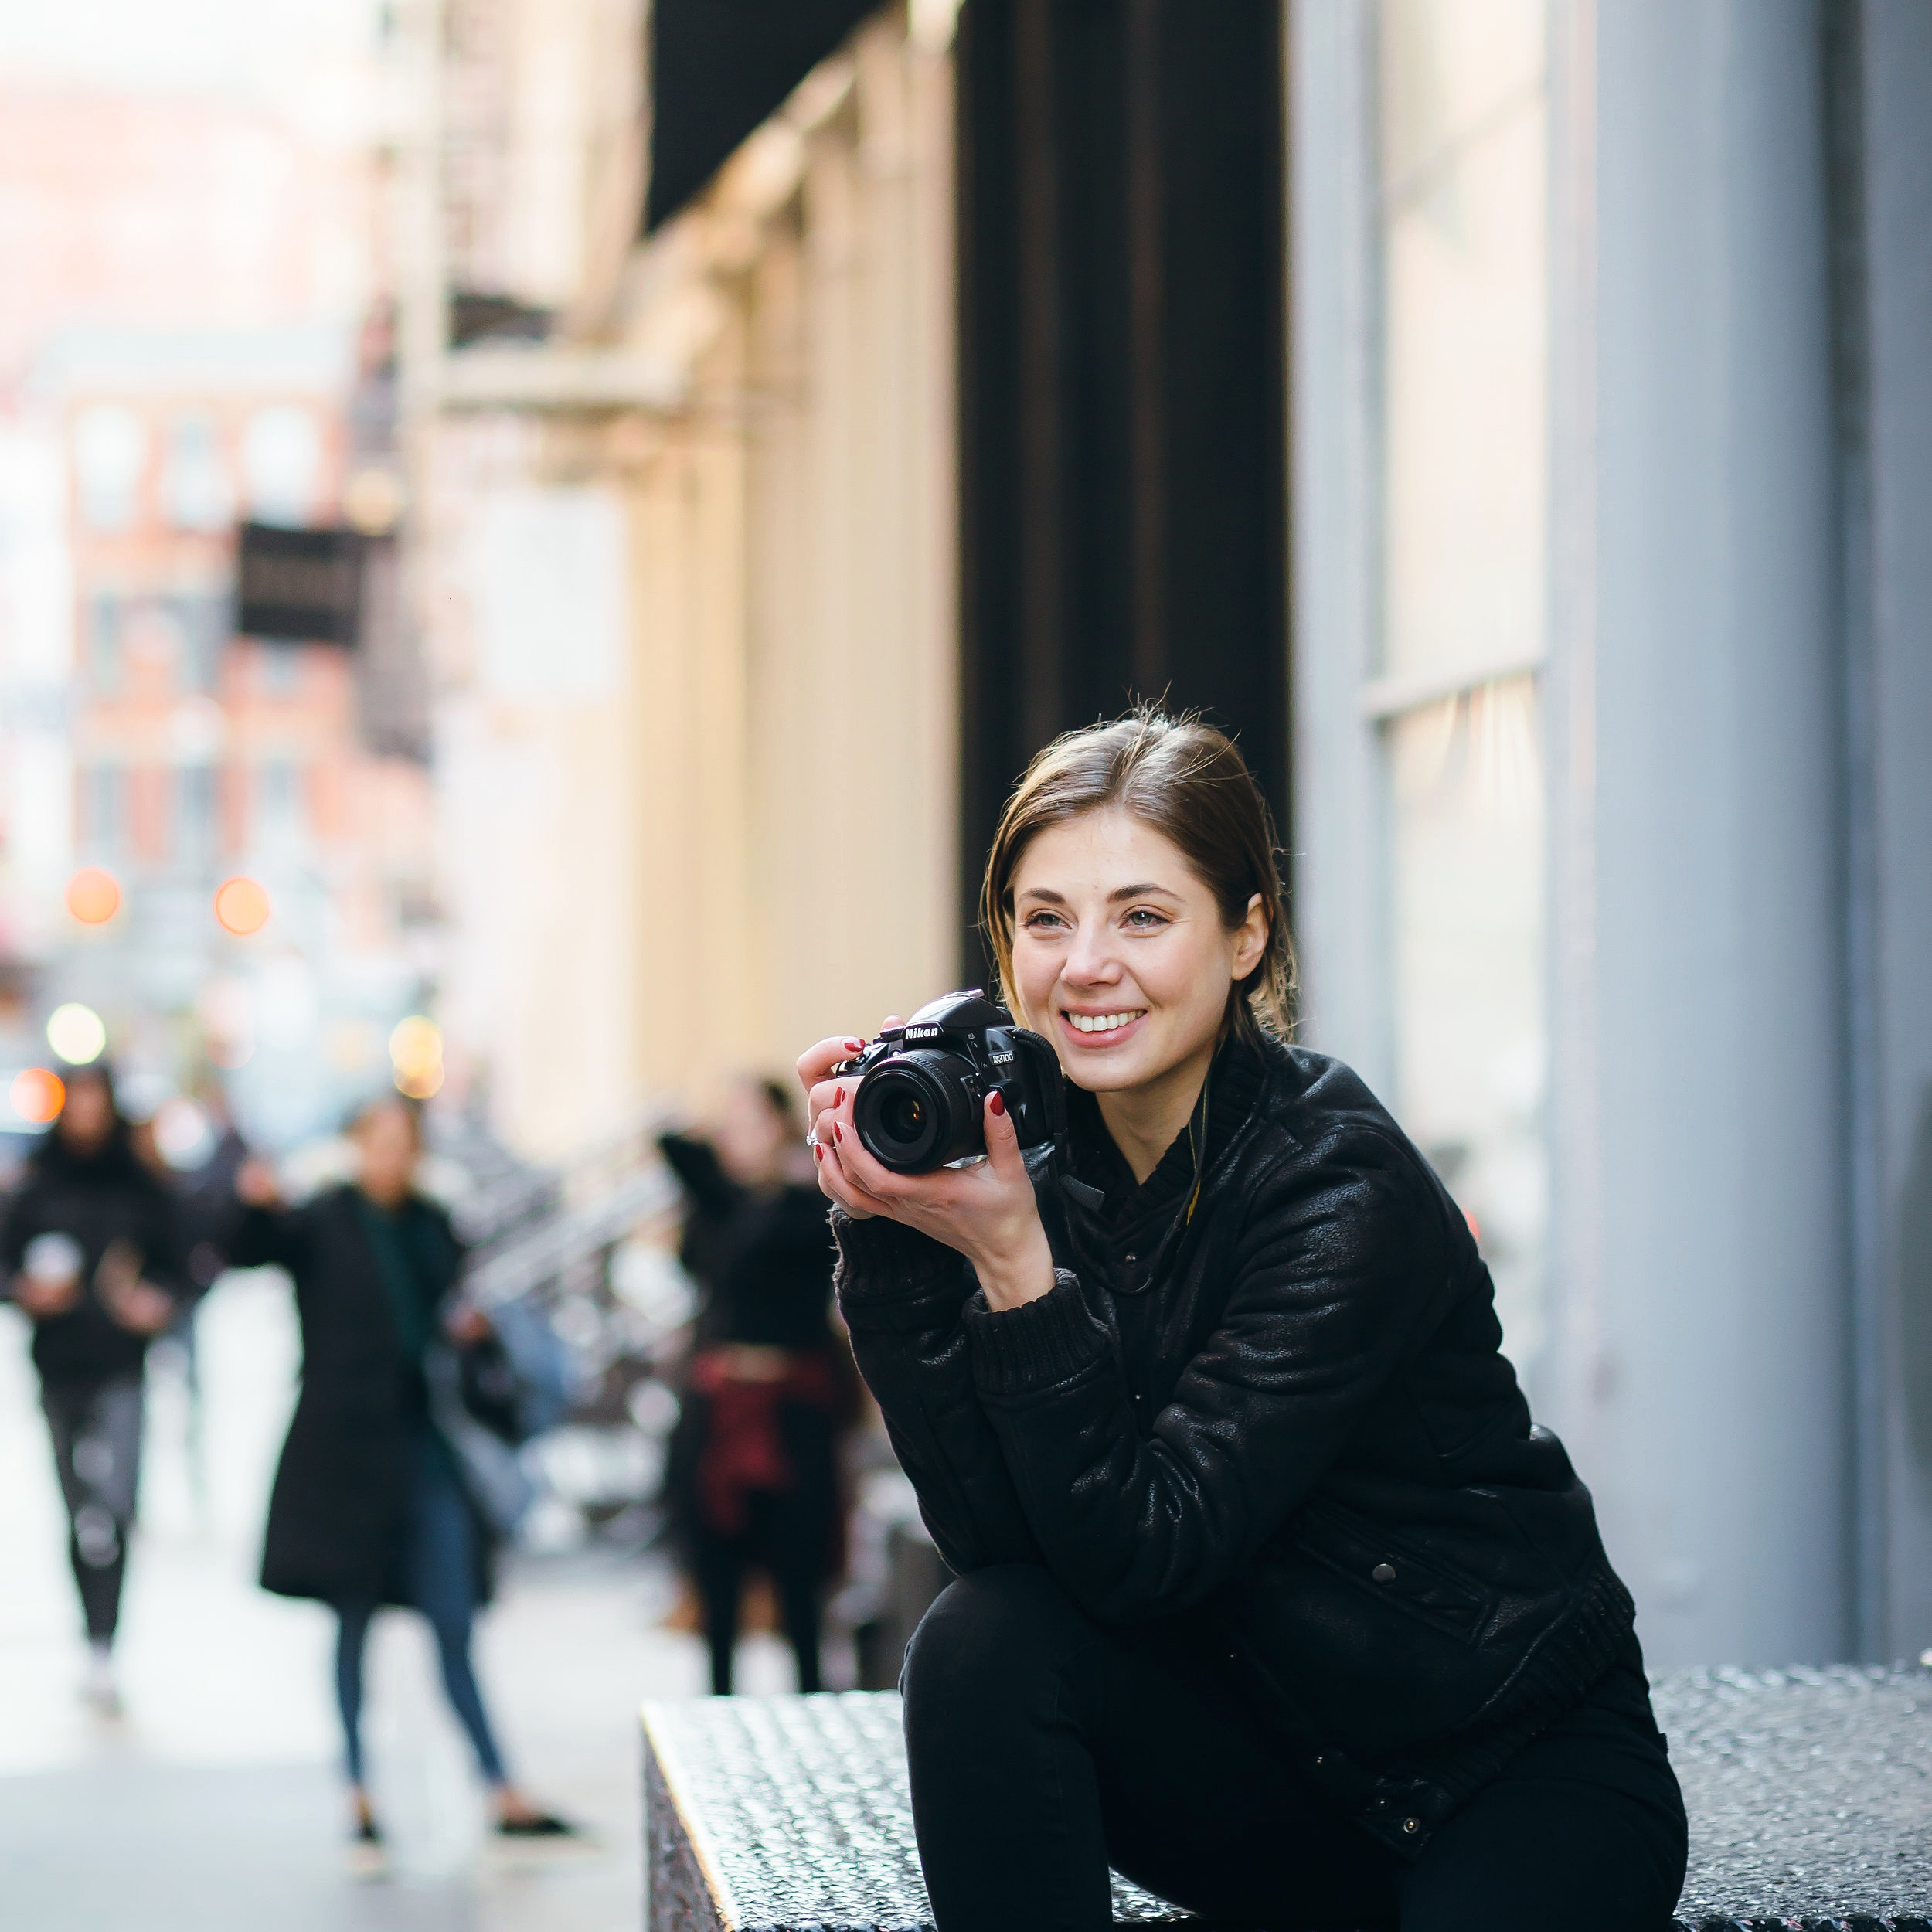 You just click a button and something magical happens... - The moment I set foot in New York, I was inspired to photograph everything - the streets, the people, the celebrations - to capture the ethos of my new home. I like to think the joy I take in my craft is evident in each photo I give to you.Event PhotographyWhen I photograph an event, your space is the star of the show. There's no posing or forced, fake smiles. It's just me, my camera, and your beautiful guests. My lens captures the vibe and interior design you worked so hard to create, showcasing your talents and naturally highlighting your guests' favorite moments.What makes it all worthwhileFor me, photography is so much more than just a paycheck. When I hear someone gasp at how wonderful they look in the photos, wondering how I could have gotten such a relaxed and natural shot, I'm reminded of why I chose this work. Knowing that my art makes others happy makes all the dedication worthwhile.